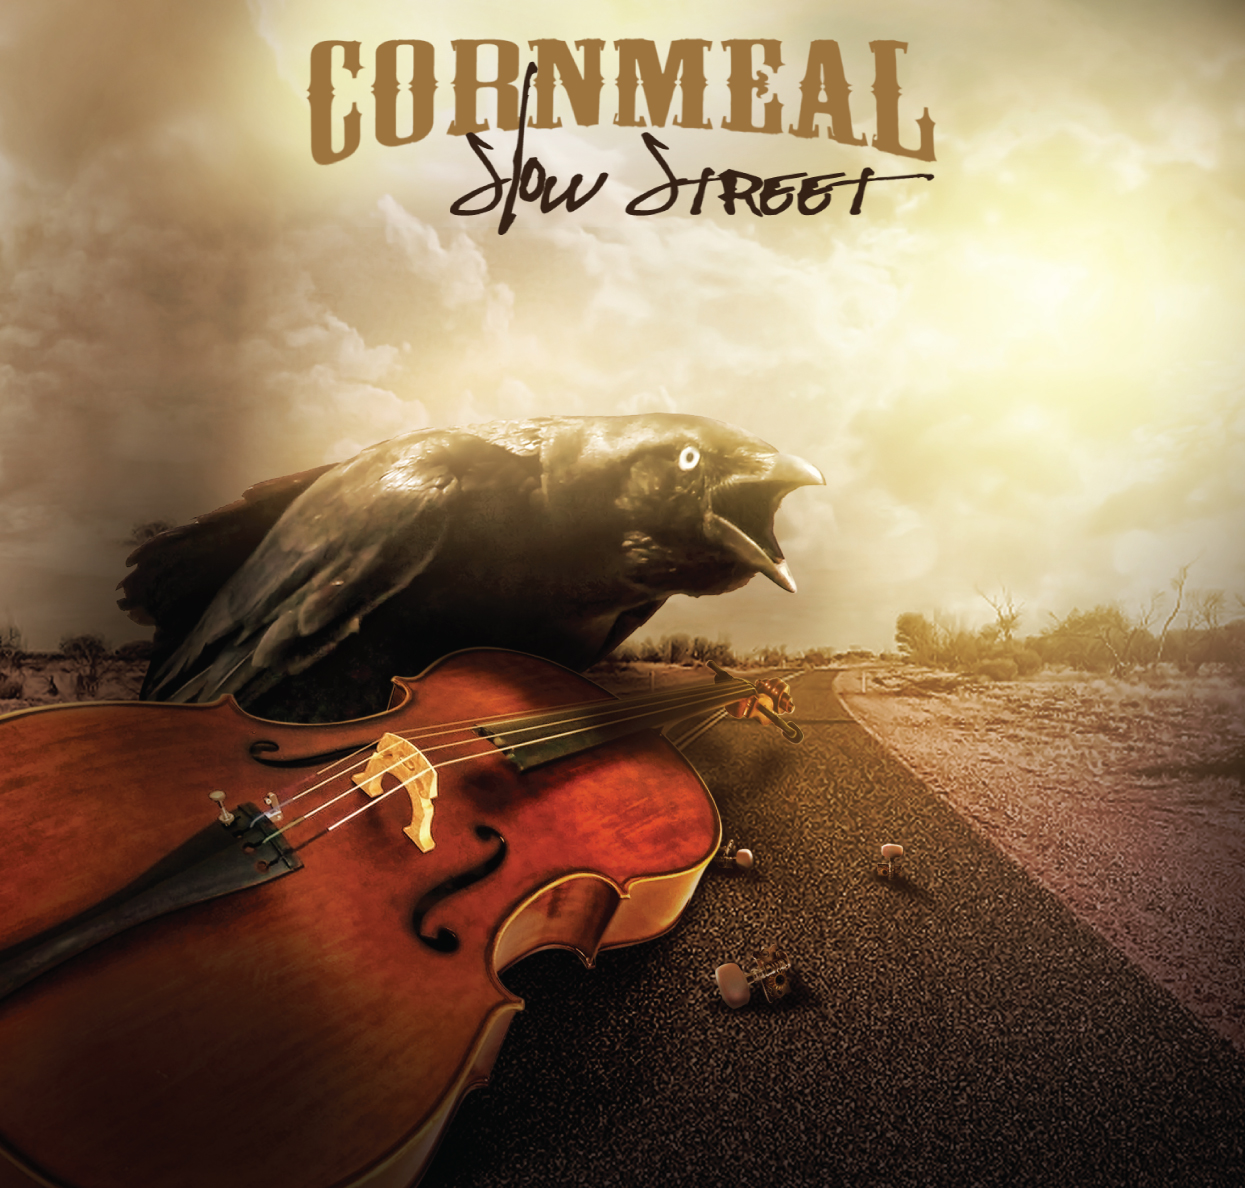 Cornmeal - Slow Street CD